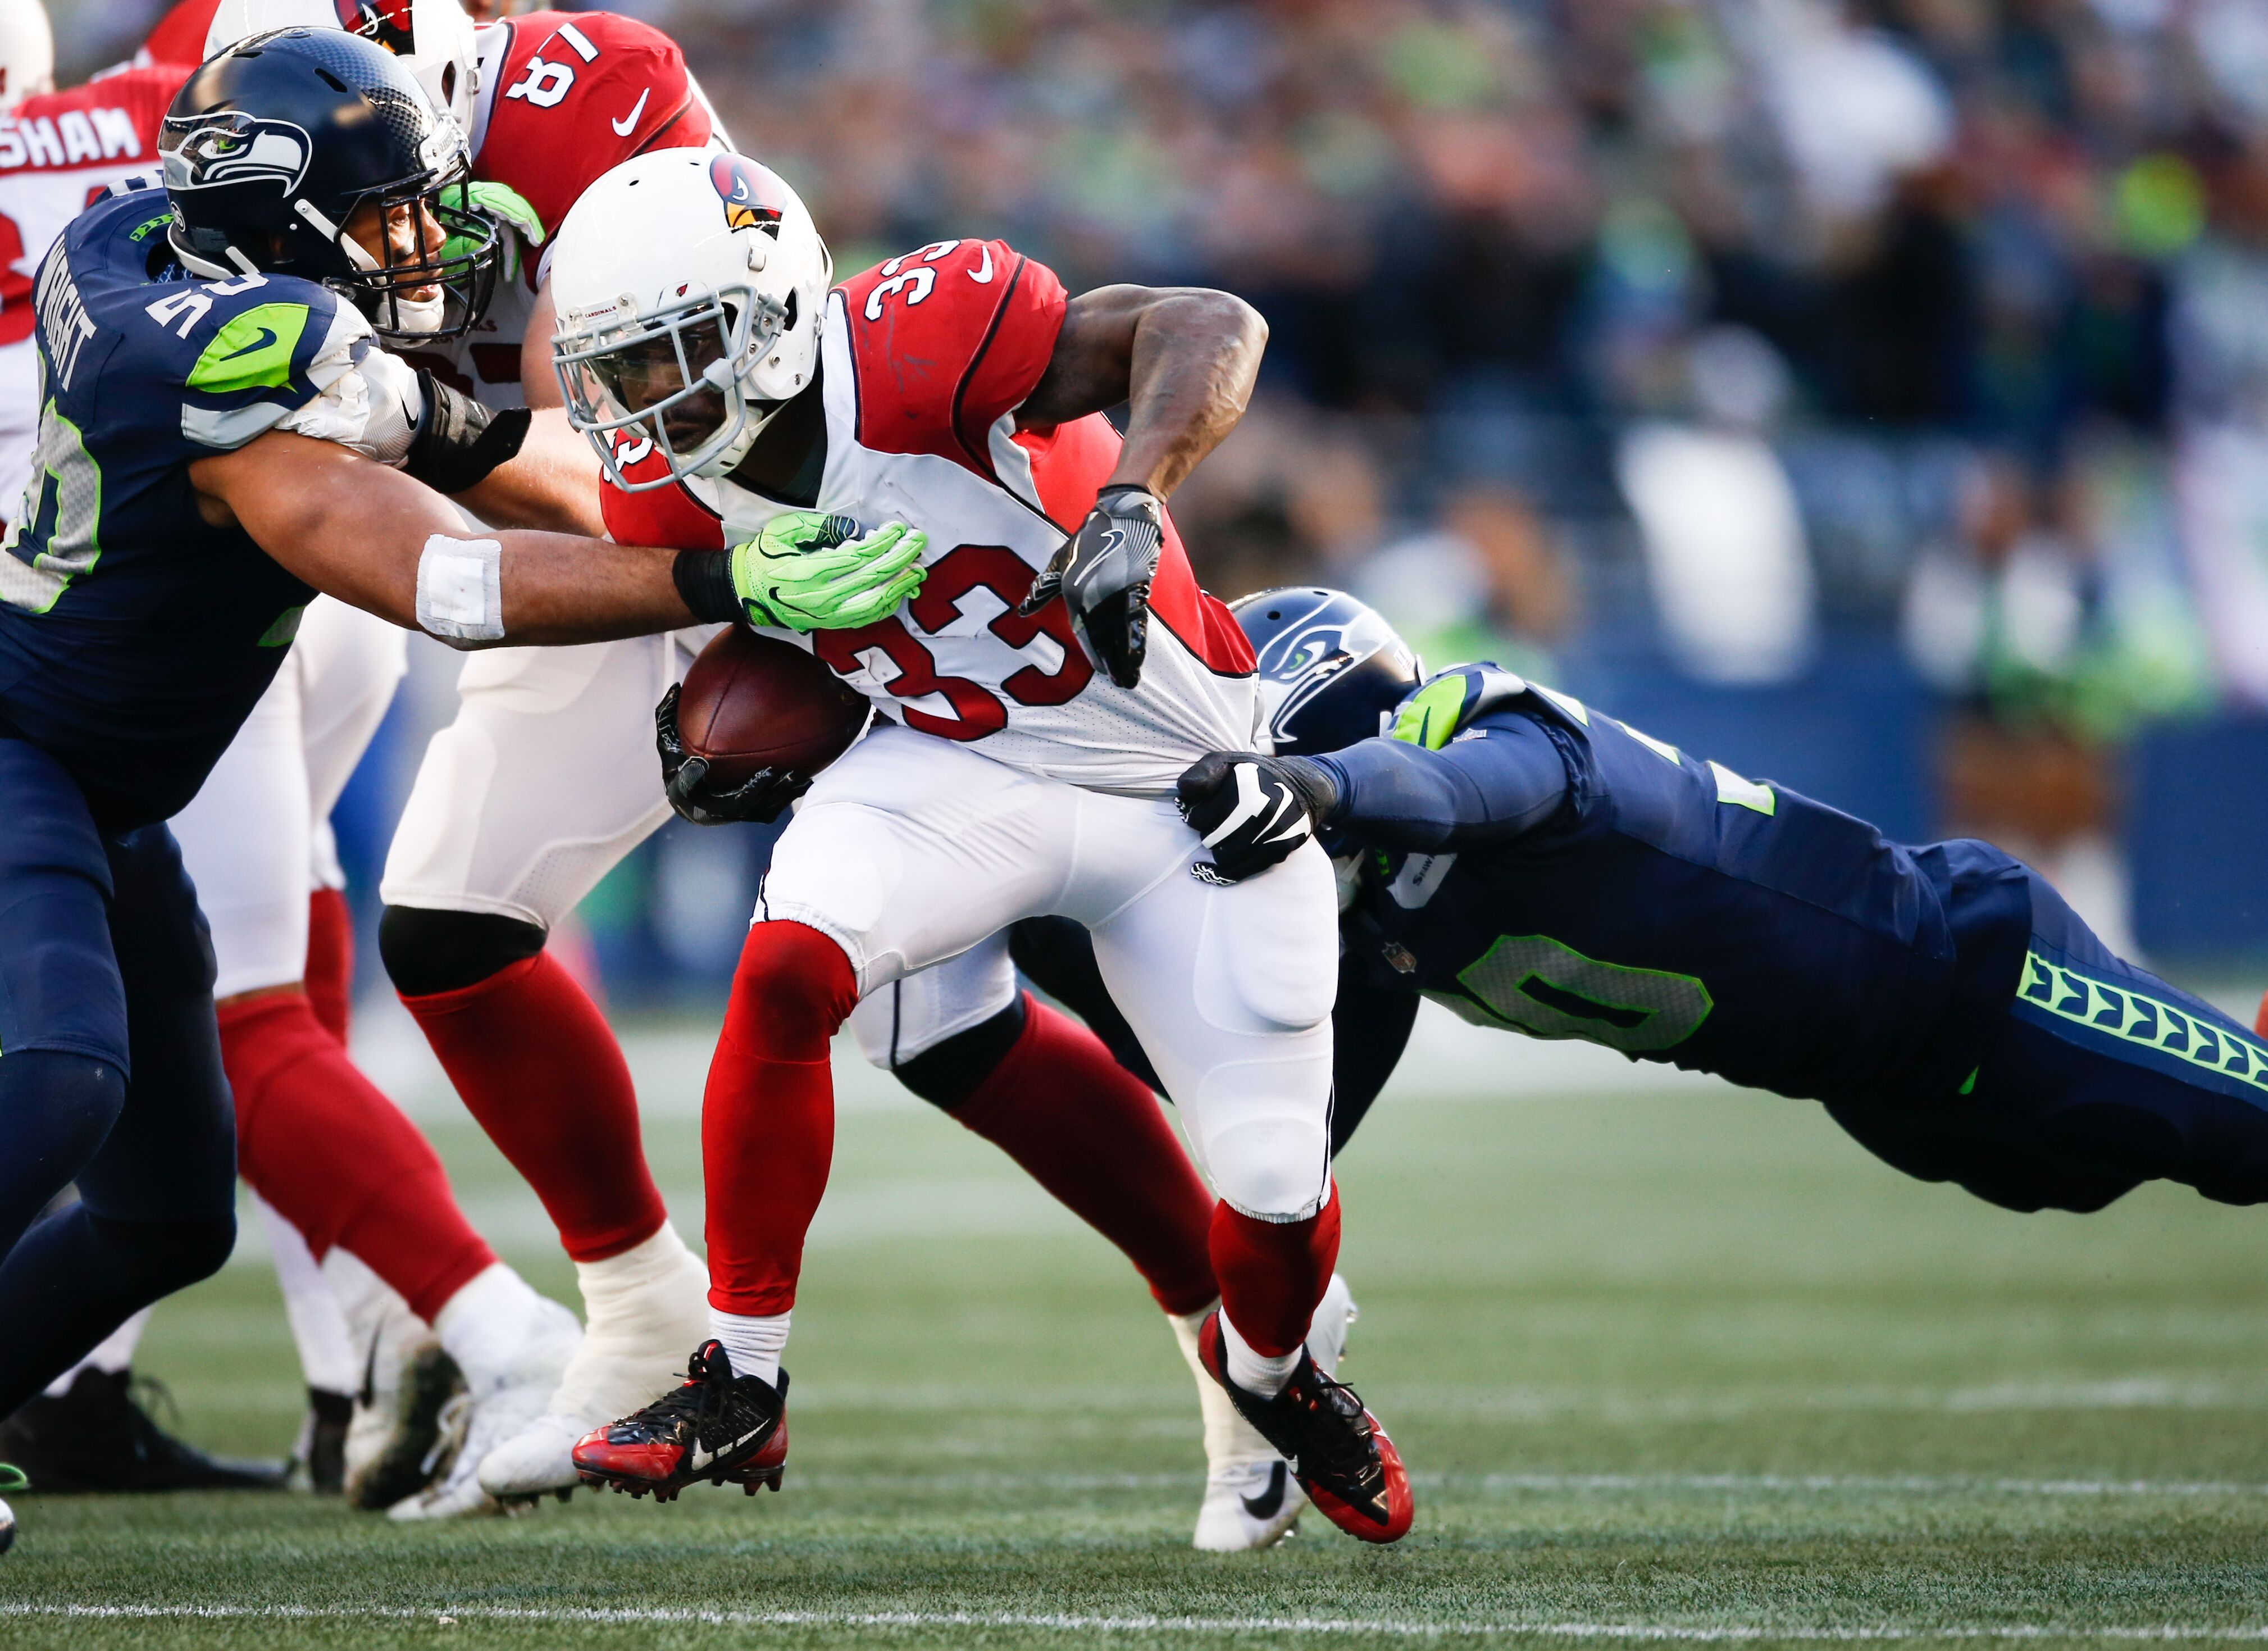 900117456-arizona-cardinals-v-seattle-seahawks.jpg